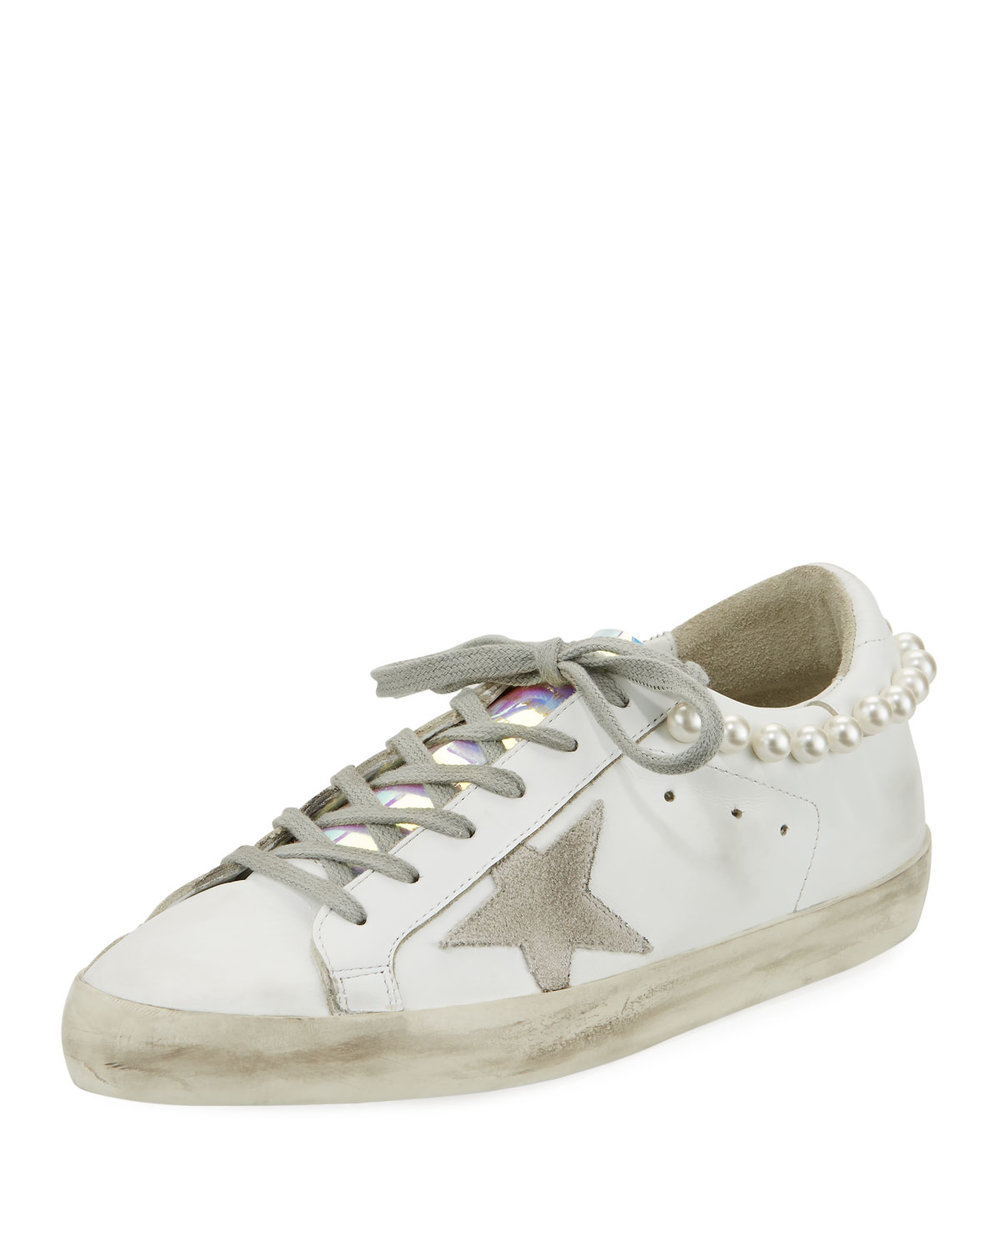 Golden Goose Superstar Pearly Necklace Sneaker   $655.00